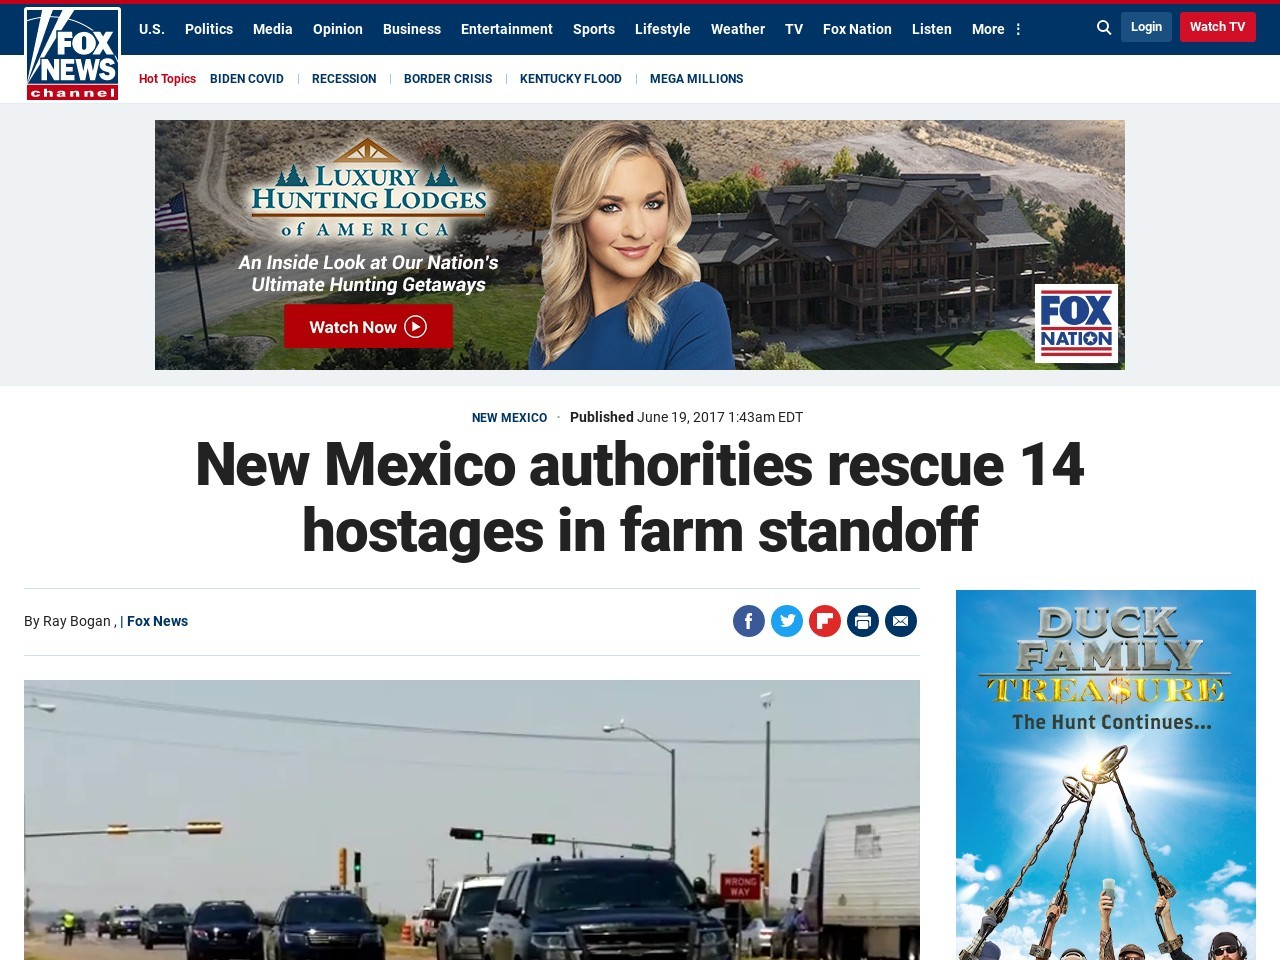 New Mexico authorities rescue 14 hostages in farm standoff